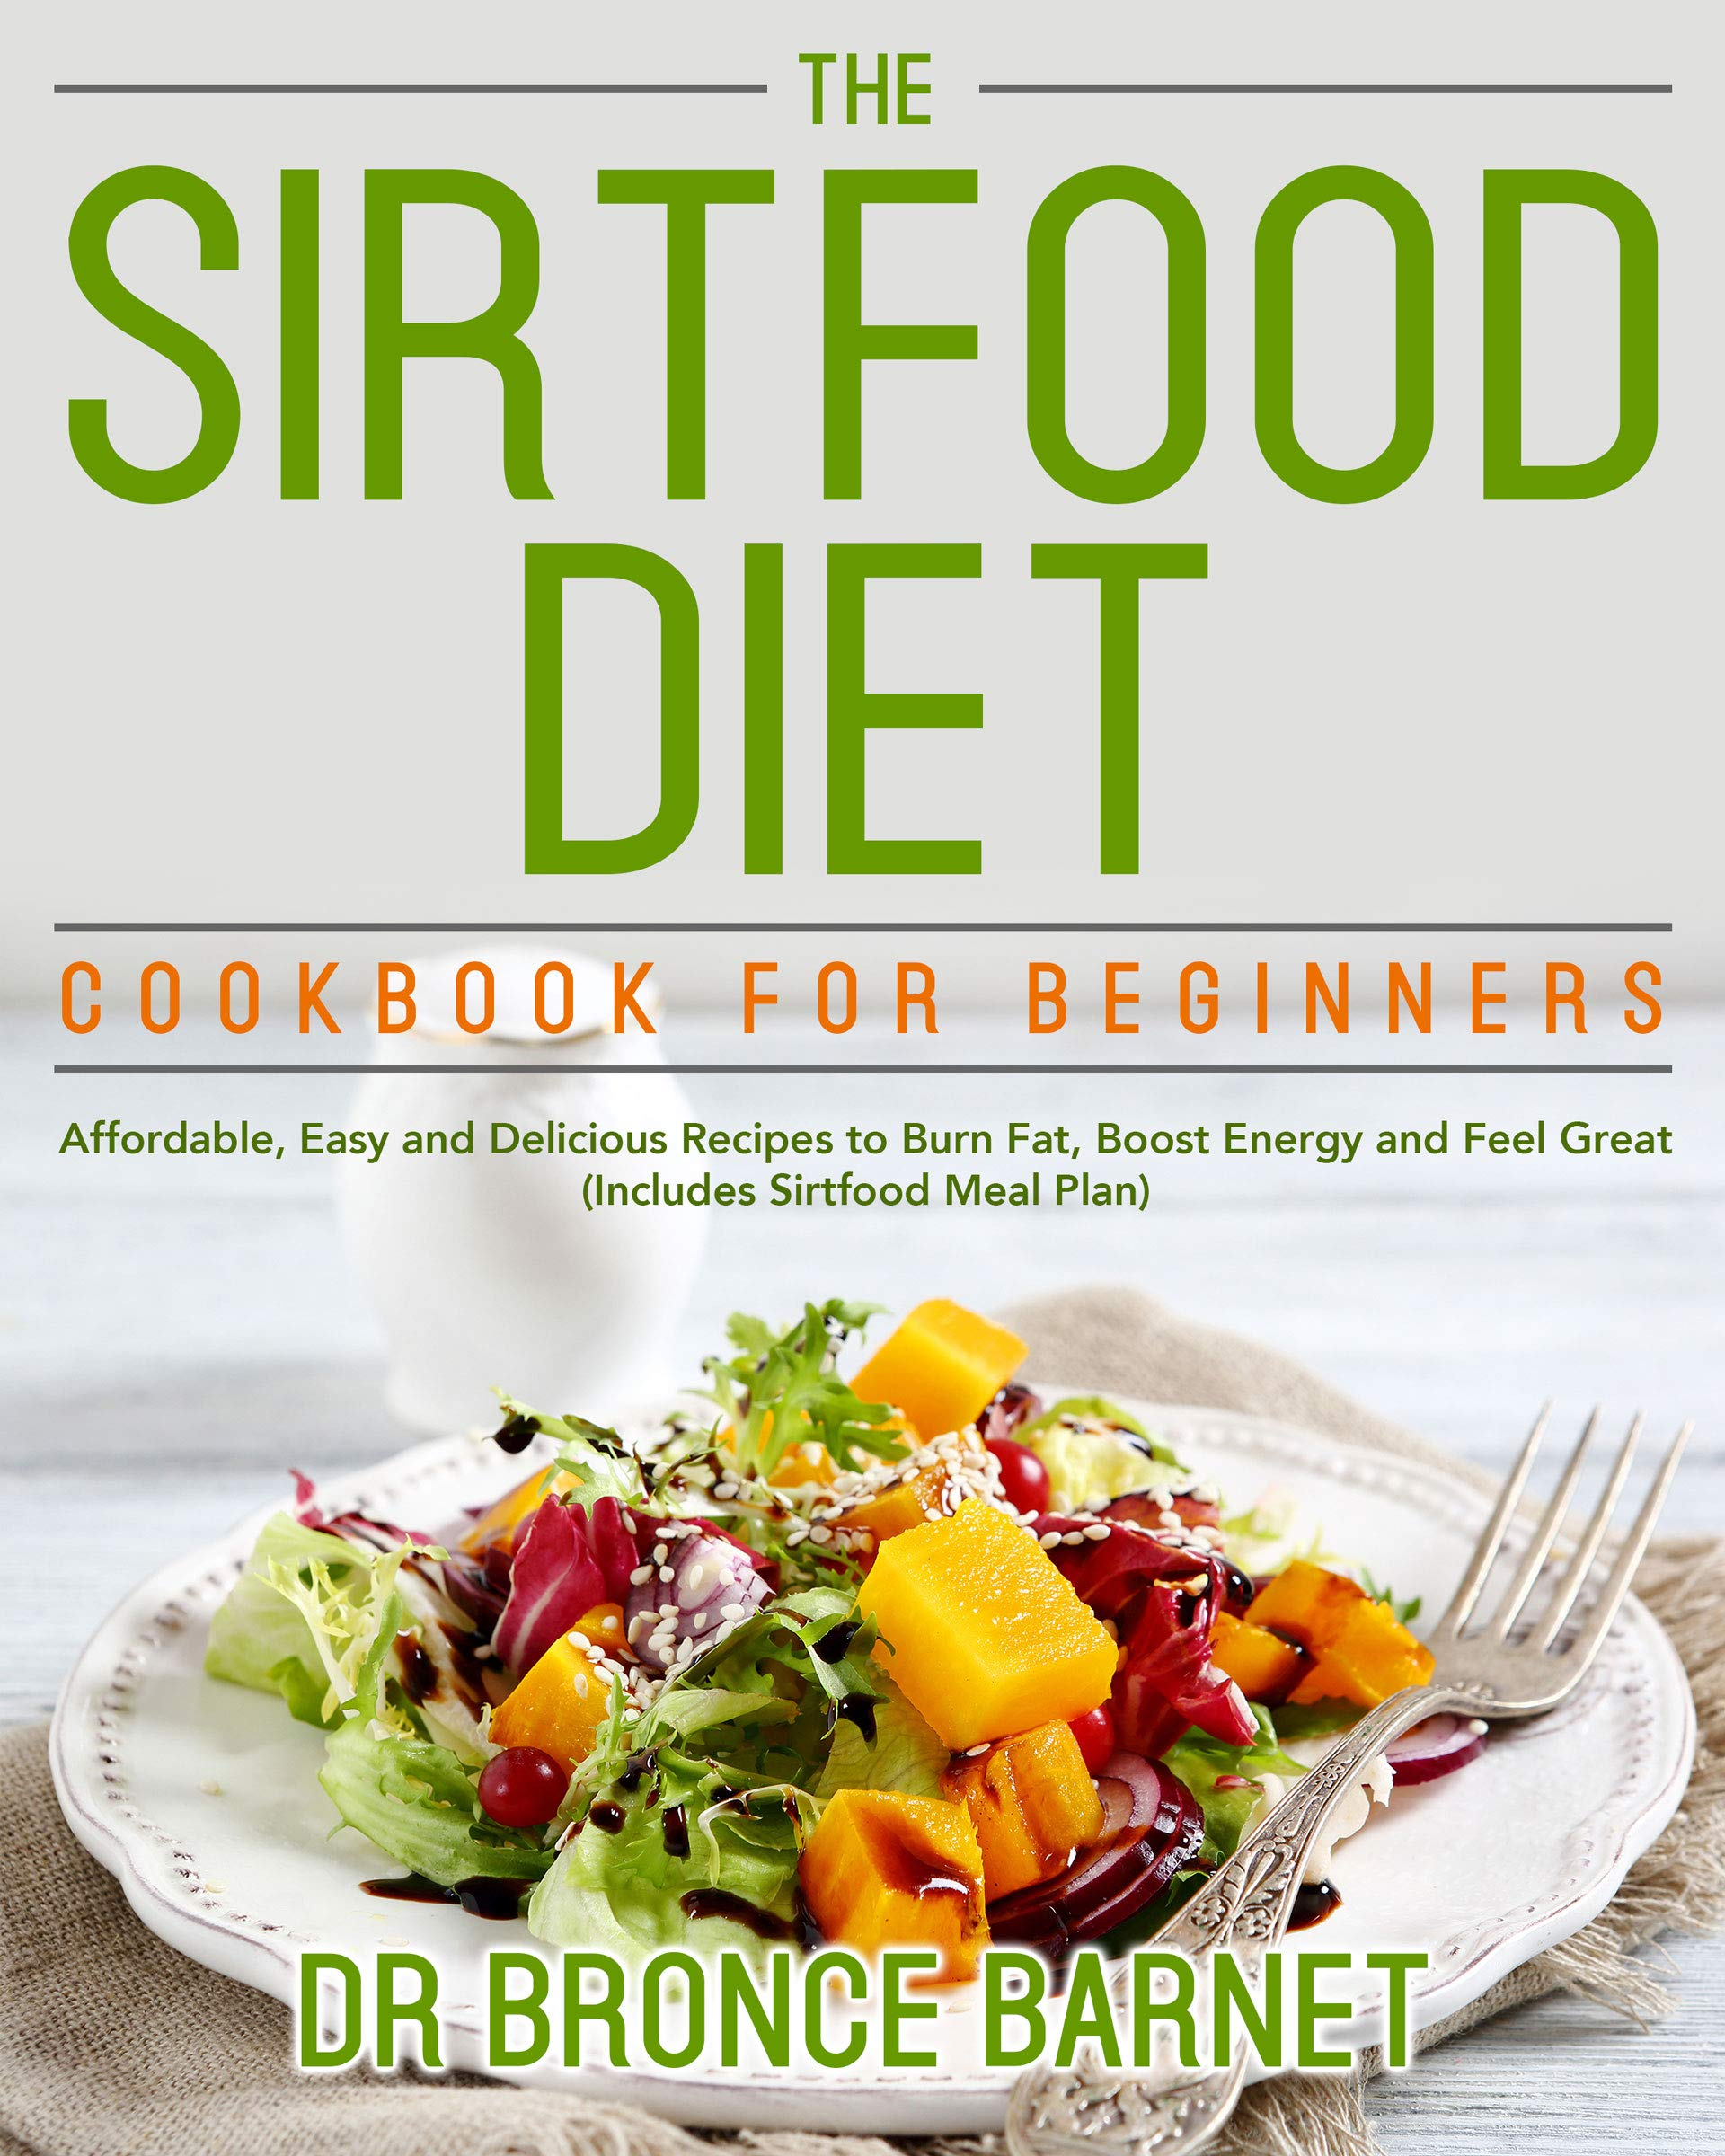 Image OfThe Sirtfood Diet Cookbook For Beginners: Affordable, Easy And Delicious Recipes To Burn Fat, Boost Energy And Feel Great ...